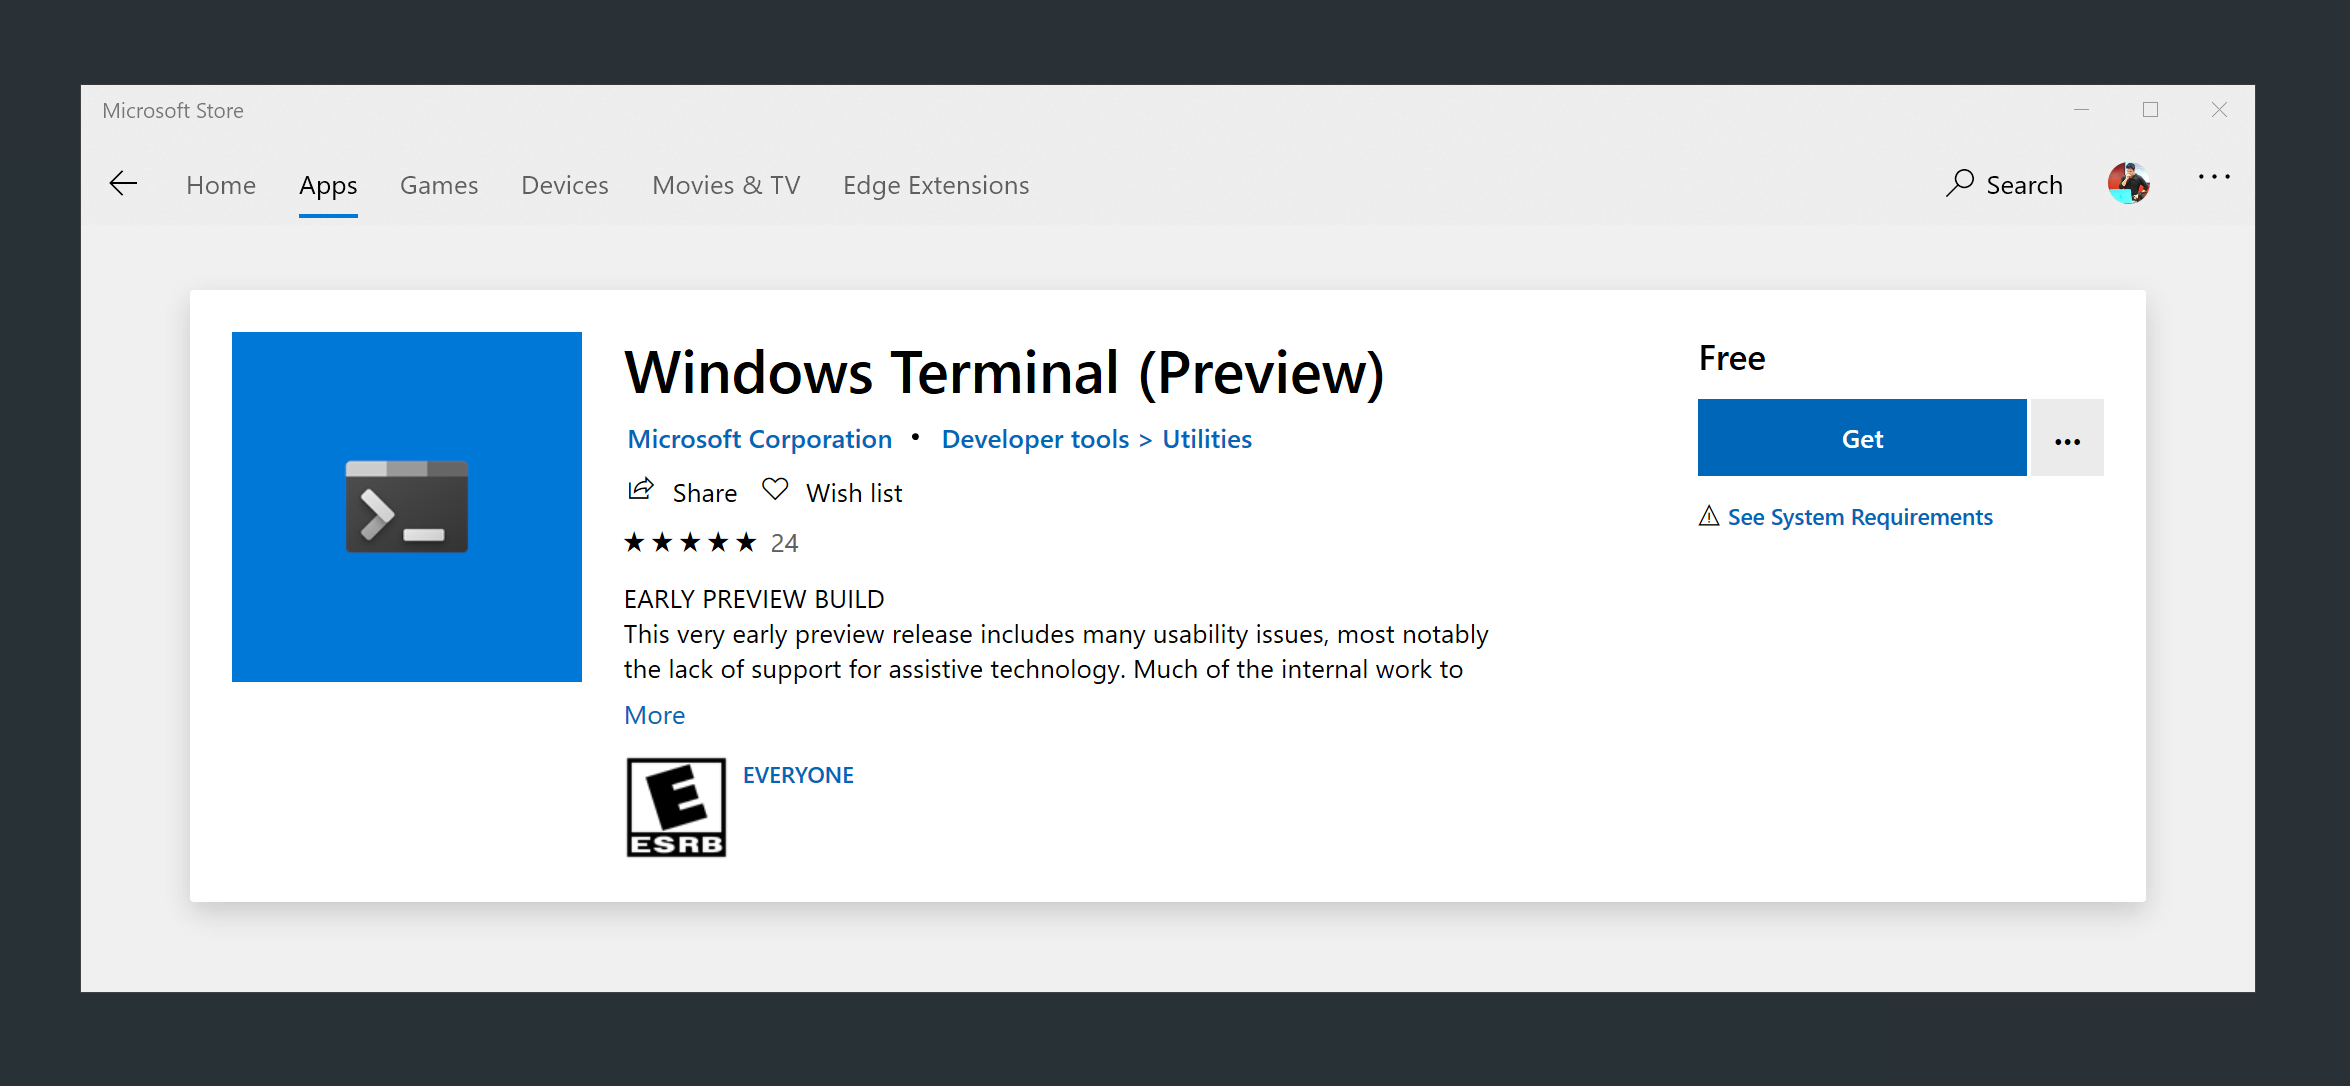 The New Windows Terminal Is Now Available to Download | PHPNews